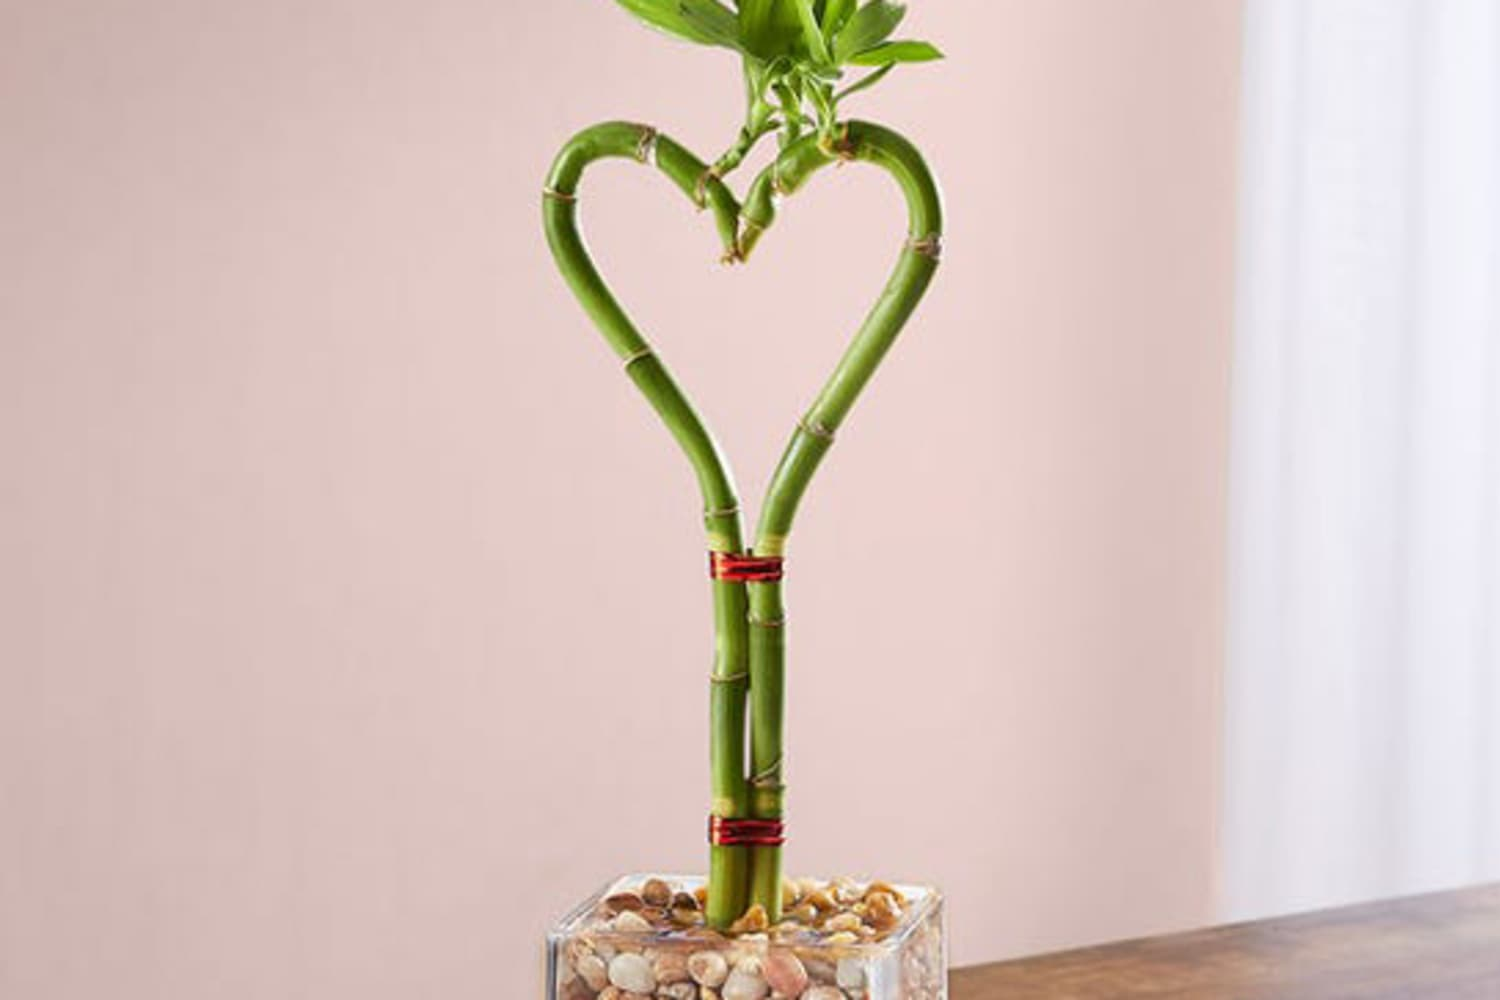 This Heart-Shaped Bamboo Is Perfect for Your Plant-Loving Valentine